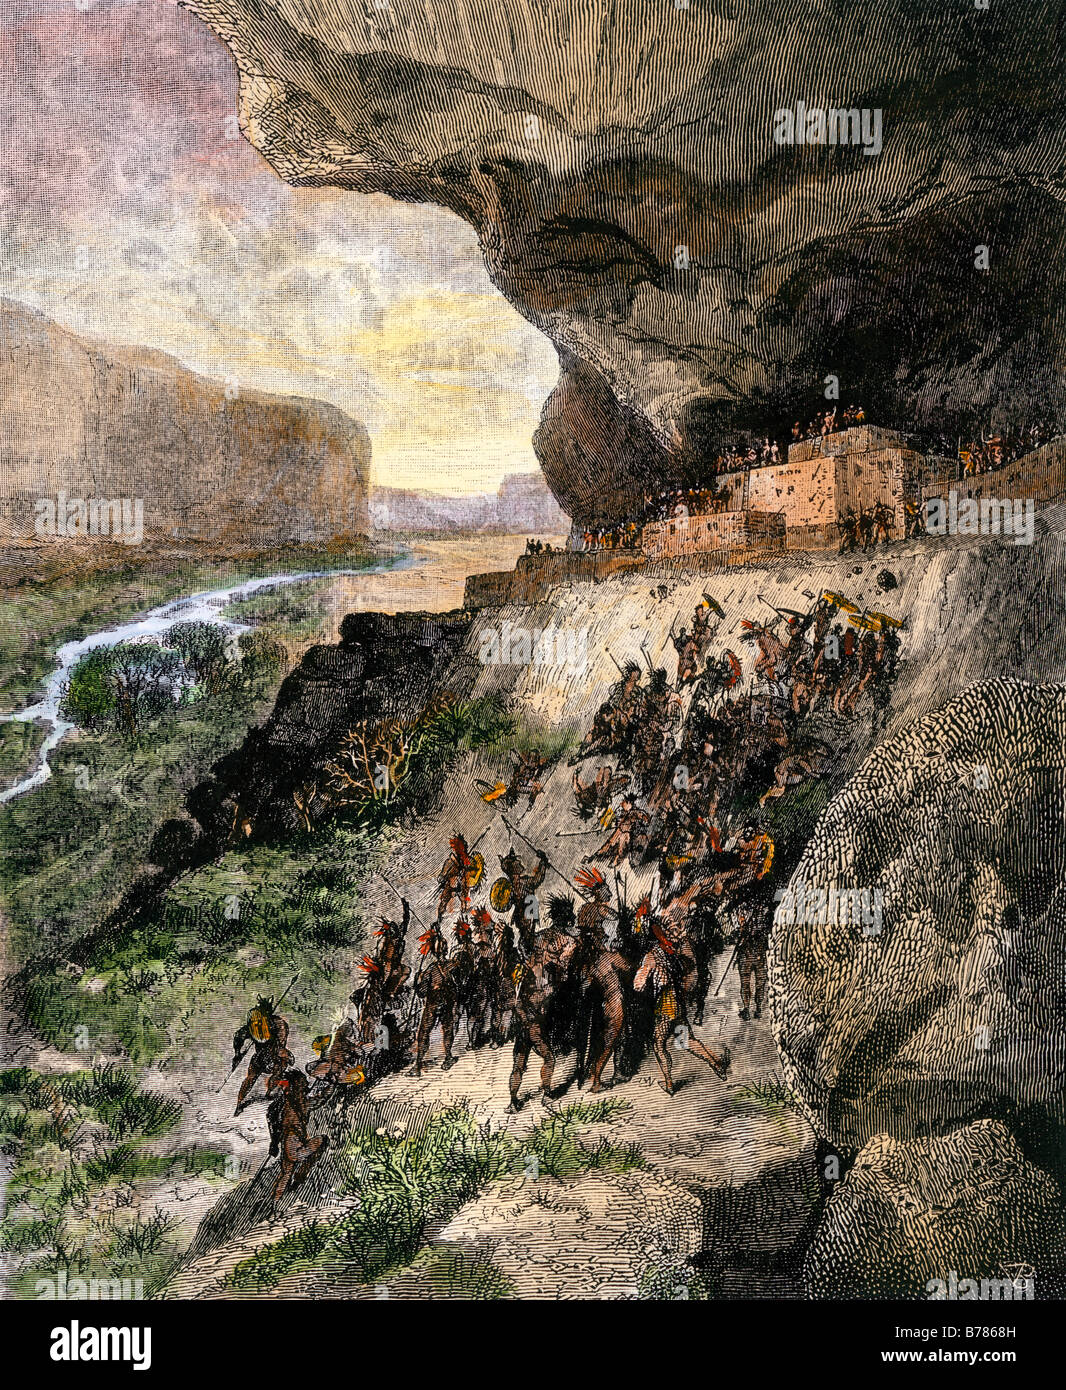 Anasazi, or Ancestral Puebloans, under attack in prehistoric times. Hand-colored woodcut - Stock Image